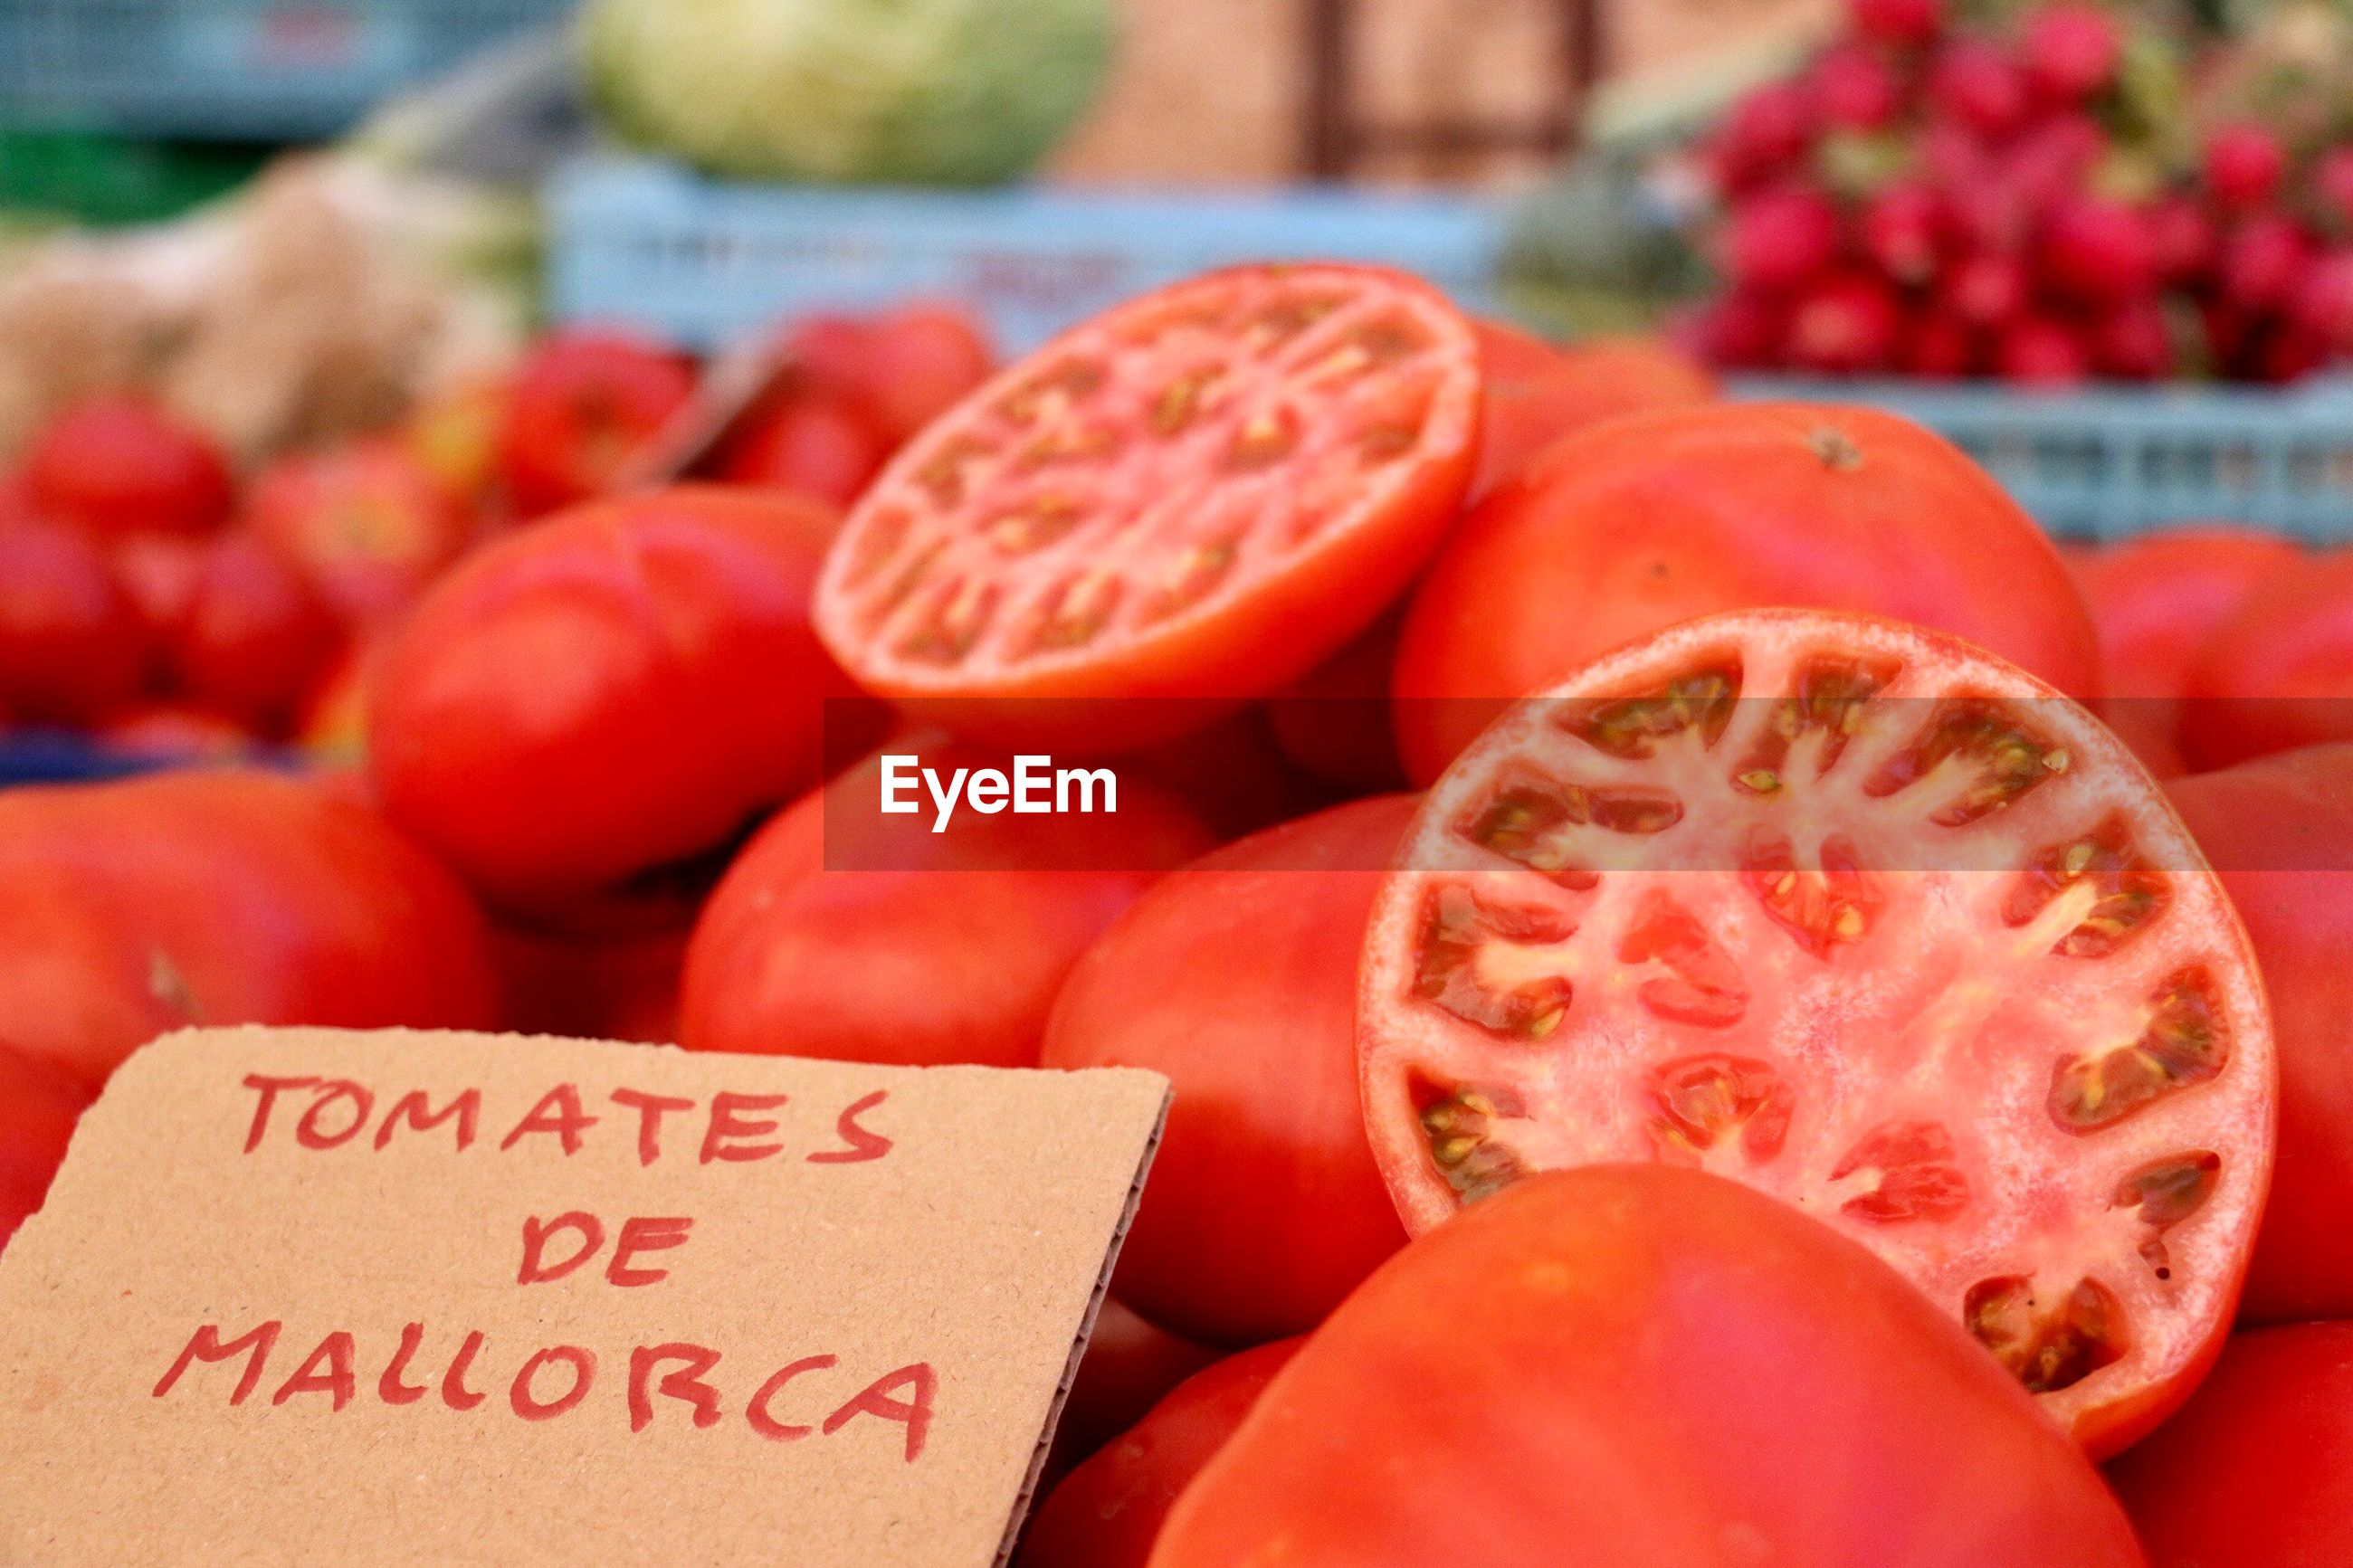 Close-up of fresh tomatoes for sale at market stall